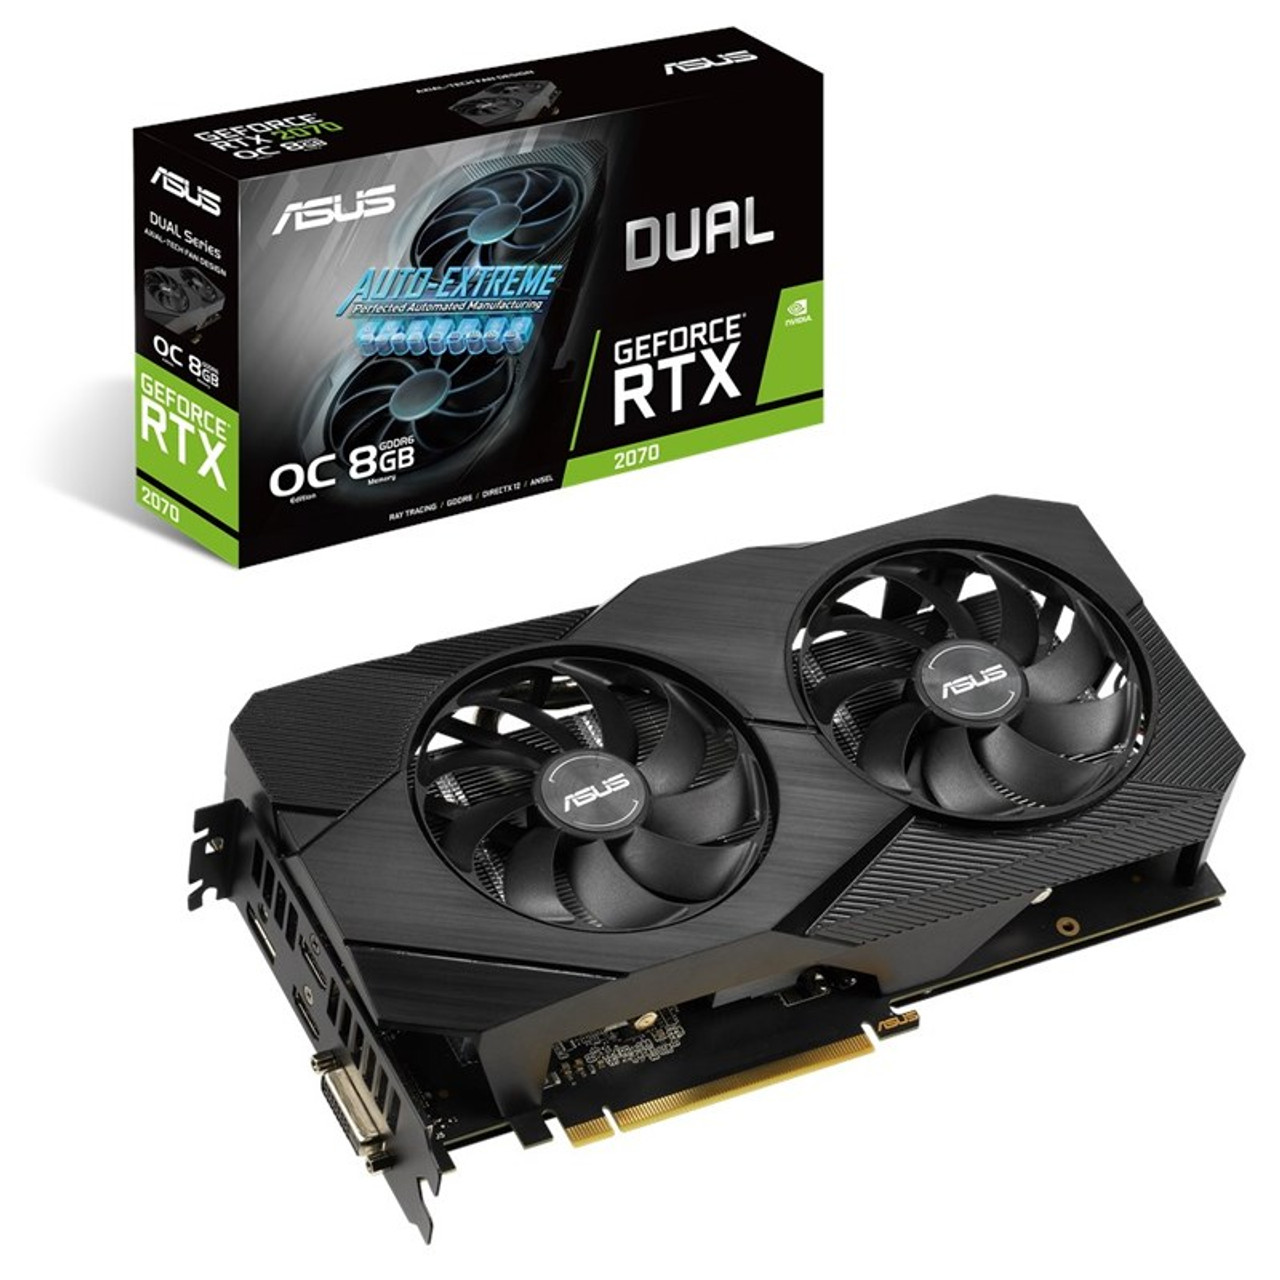 Image for Asus GeForce RTX 2070 Dual EVO OC V2 8GB Video Card CX Computer Superstore